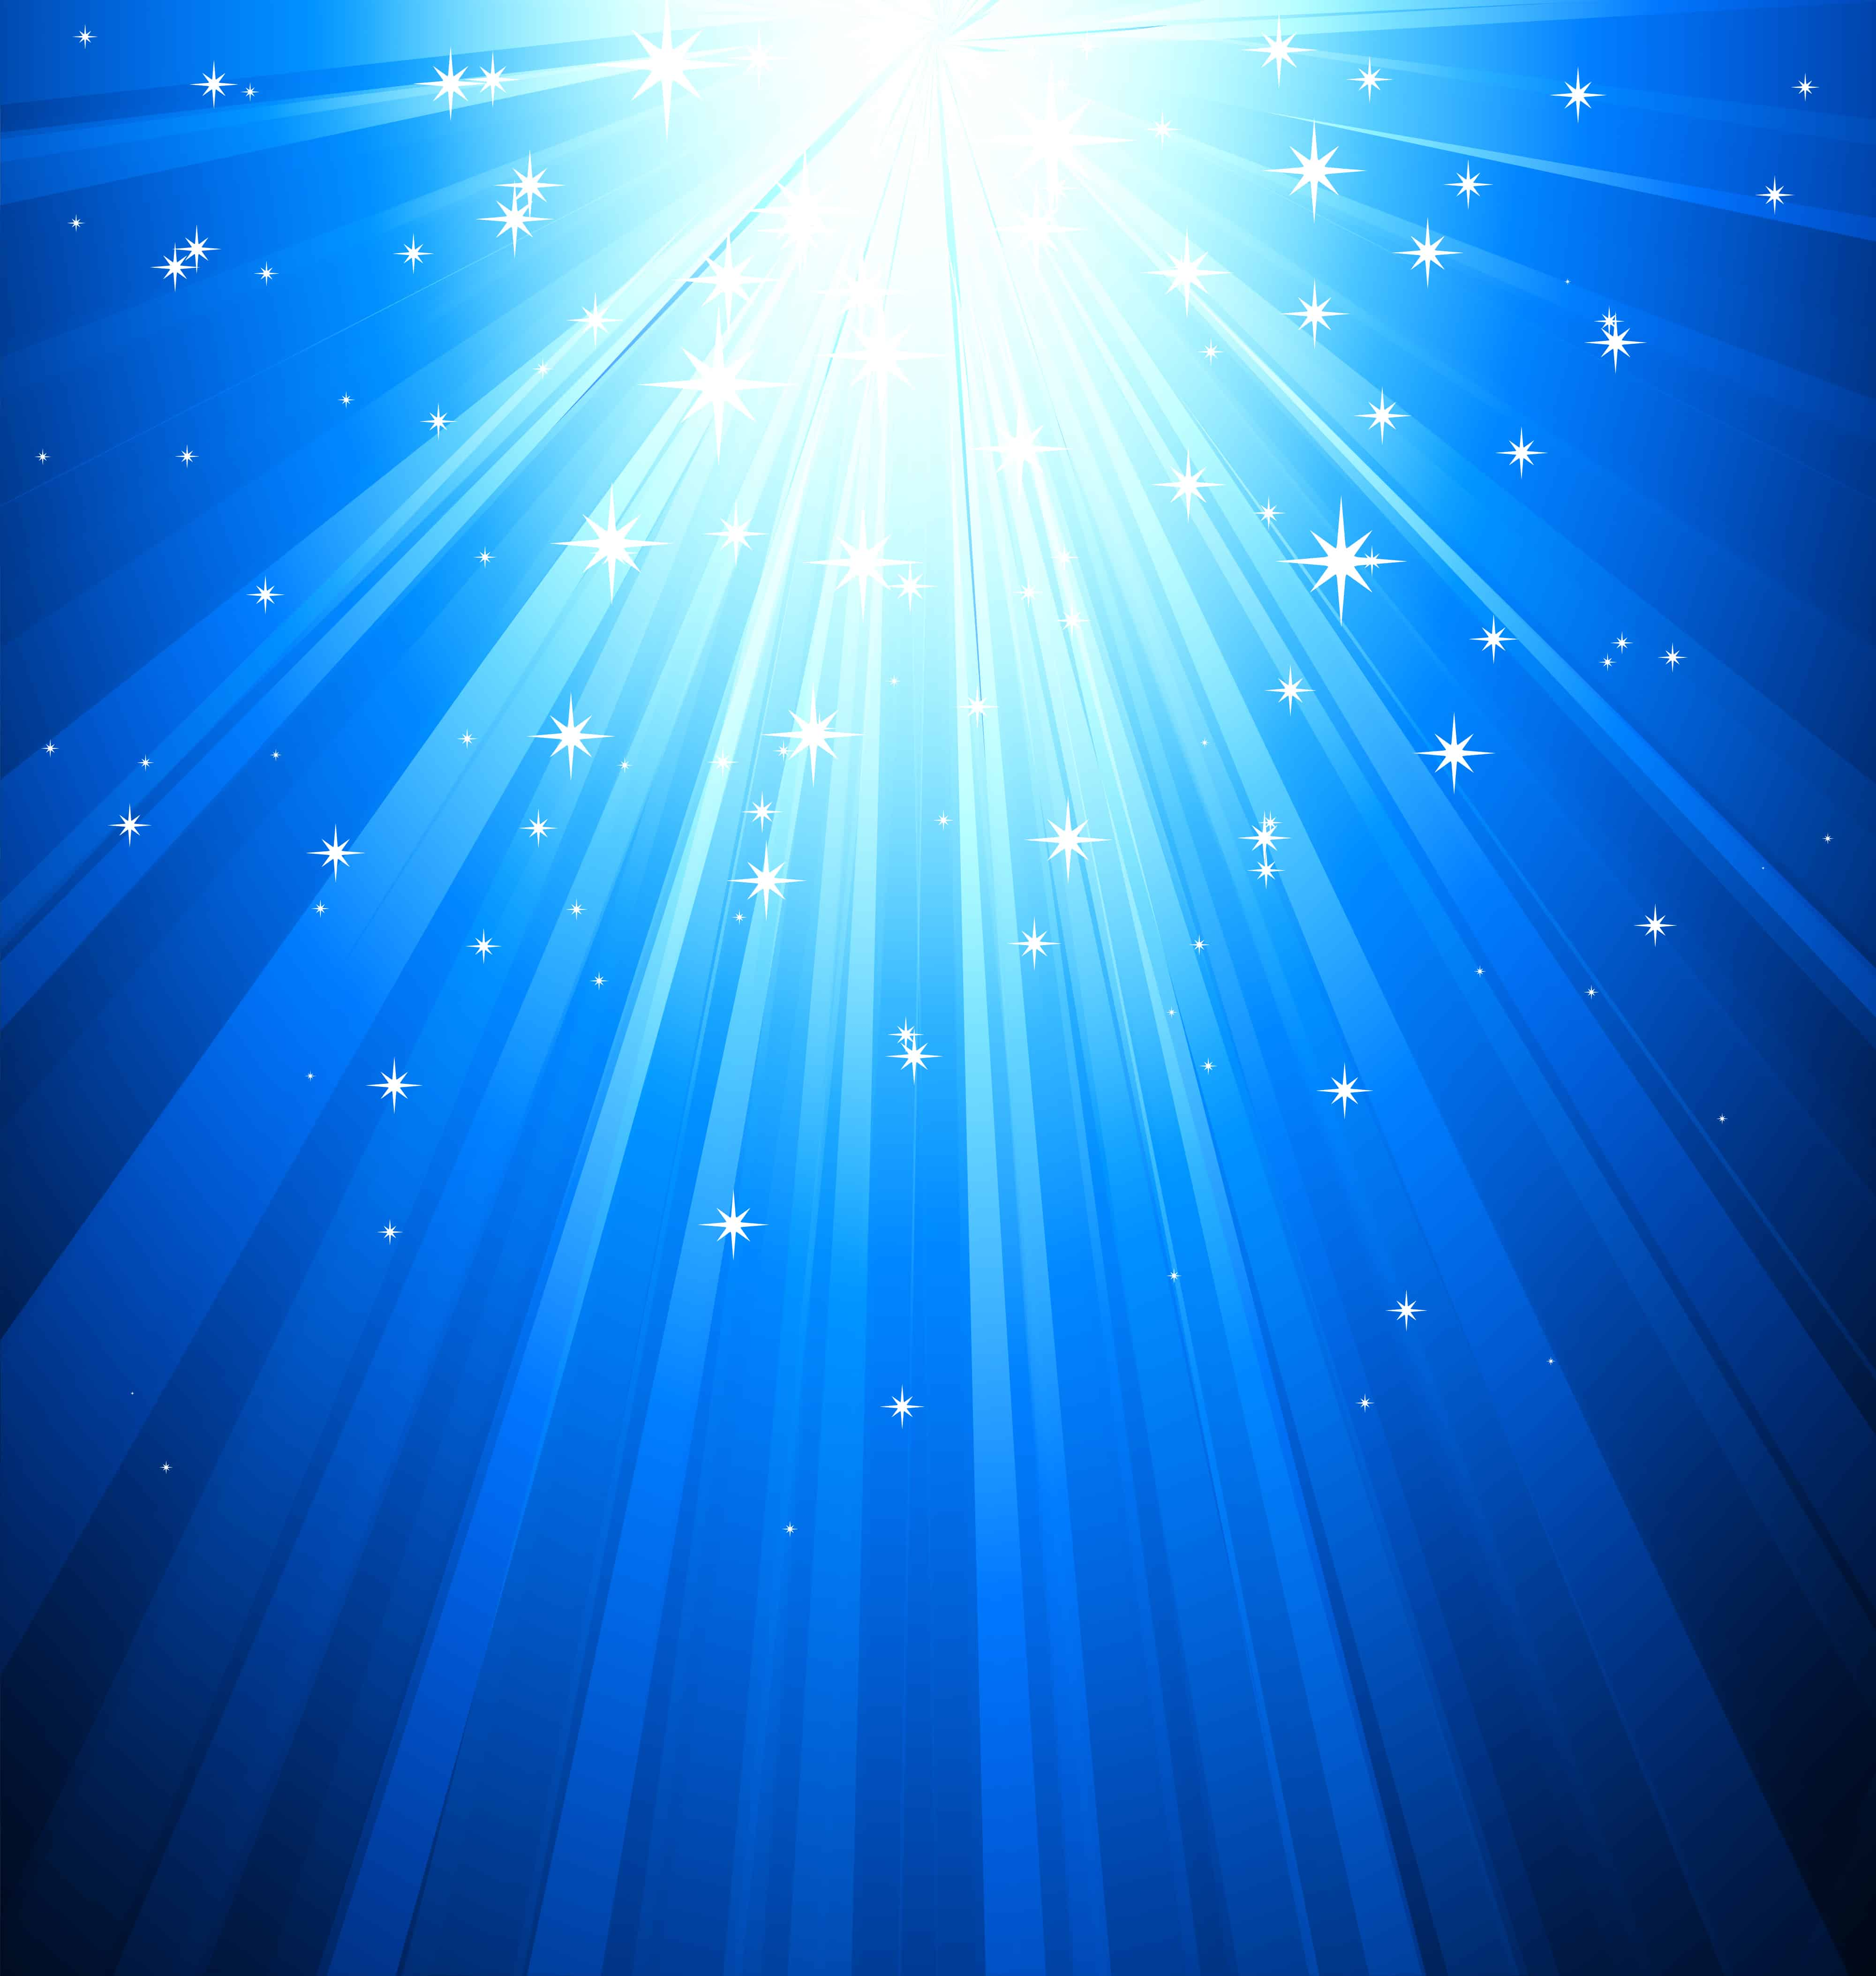 picture of stars and healing energy coming from the sky supporting us becoming our divine self